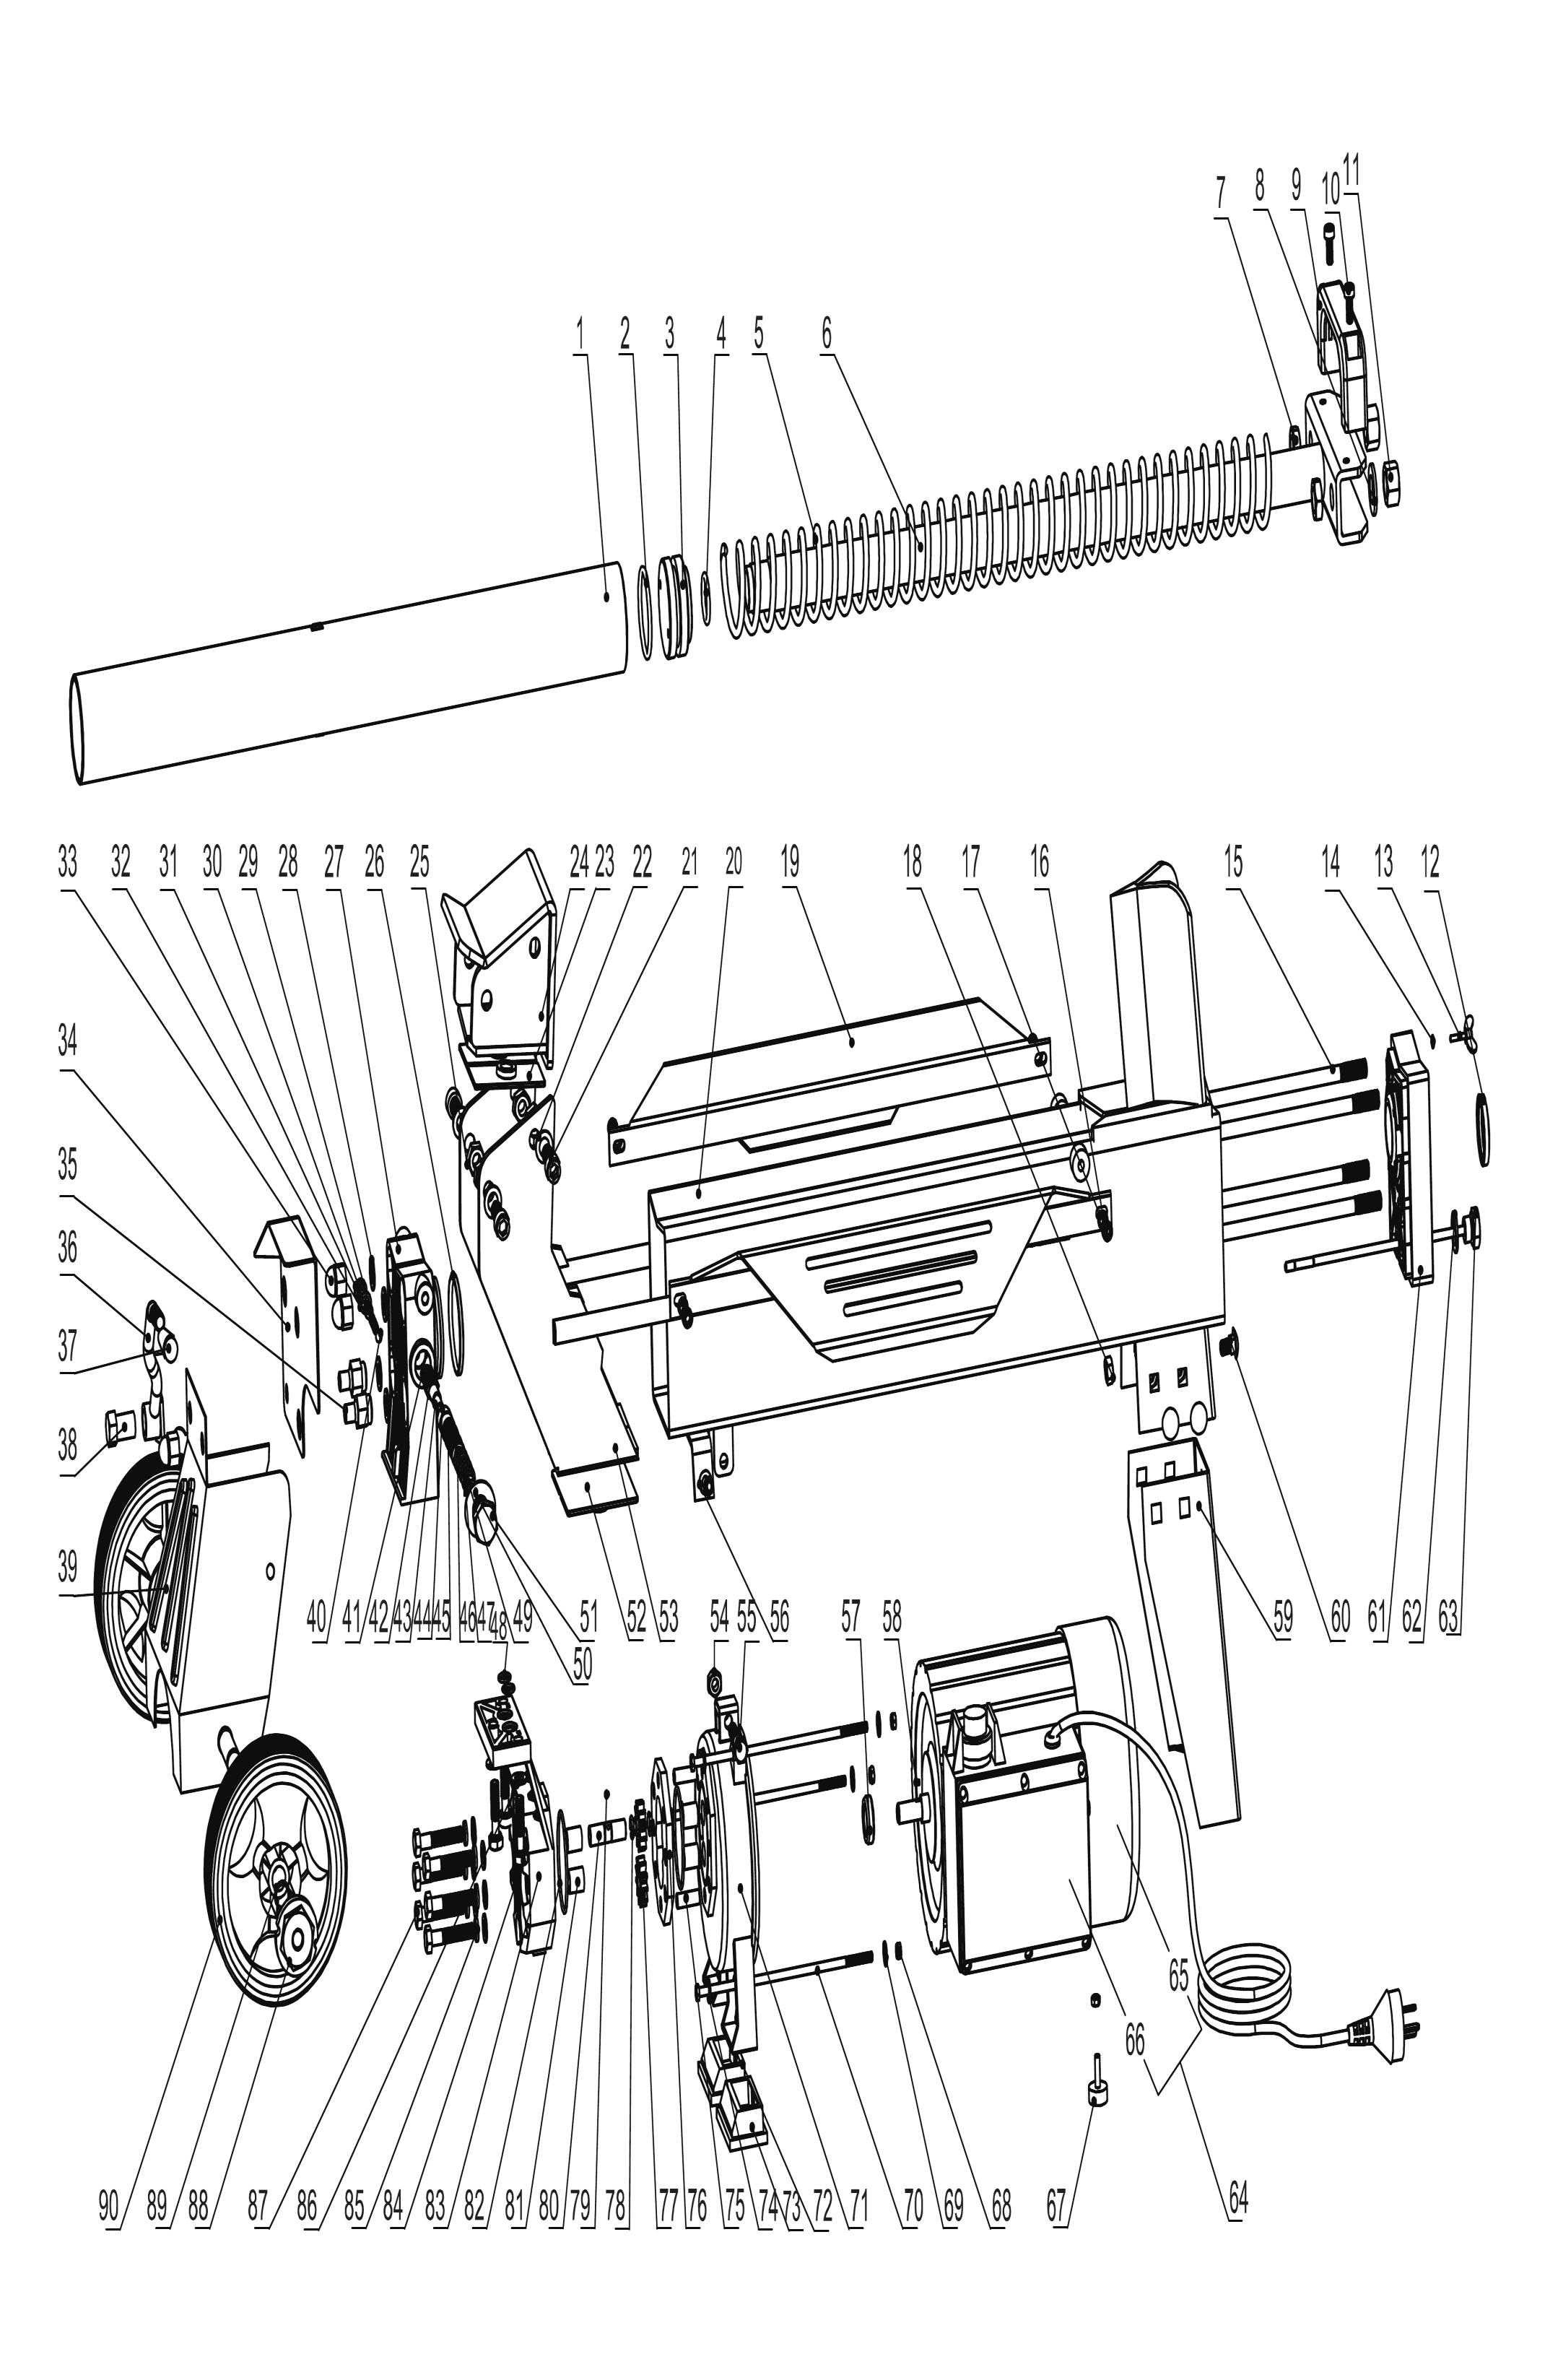 Sip 5t Log Splitter Diagram